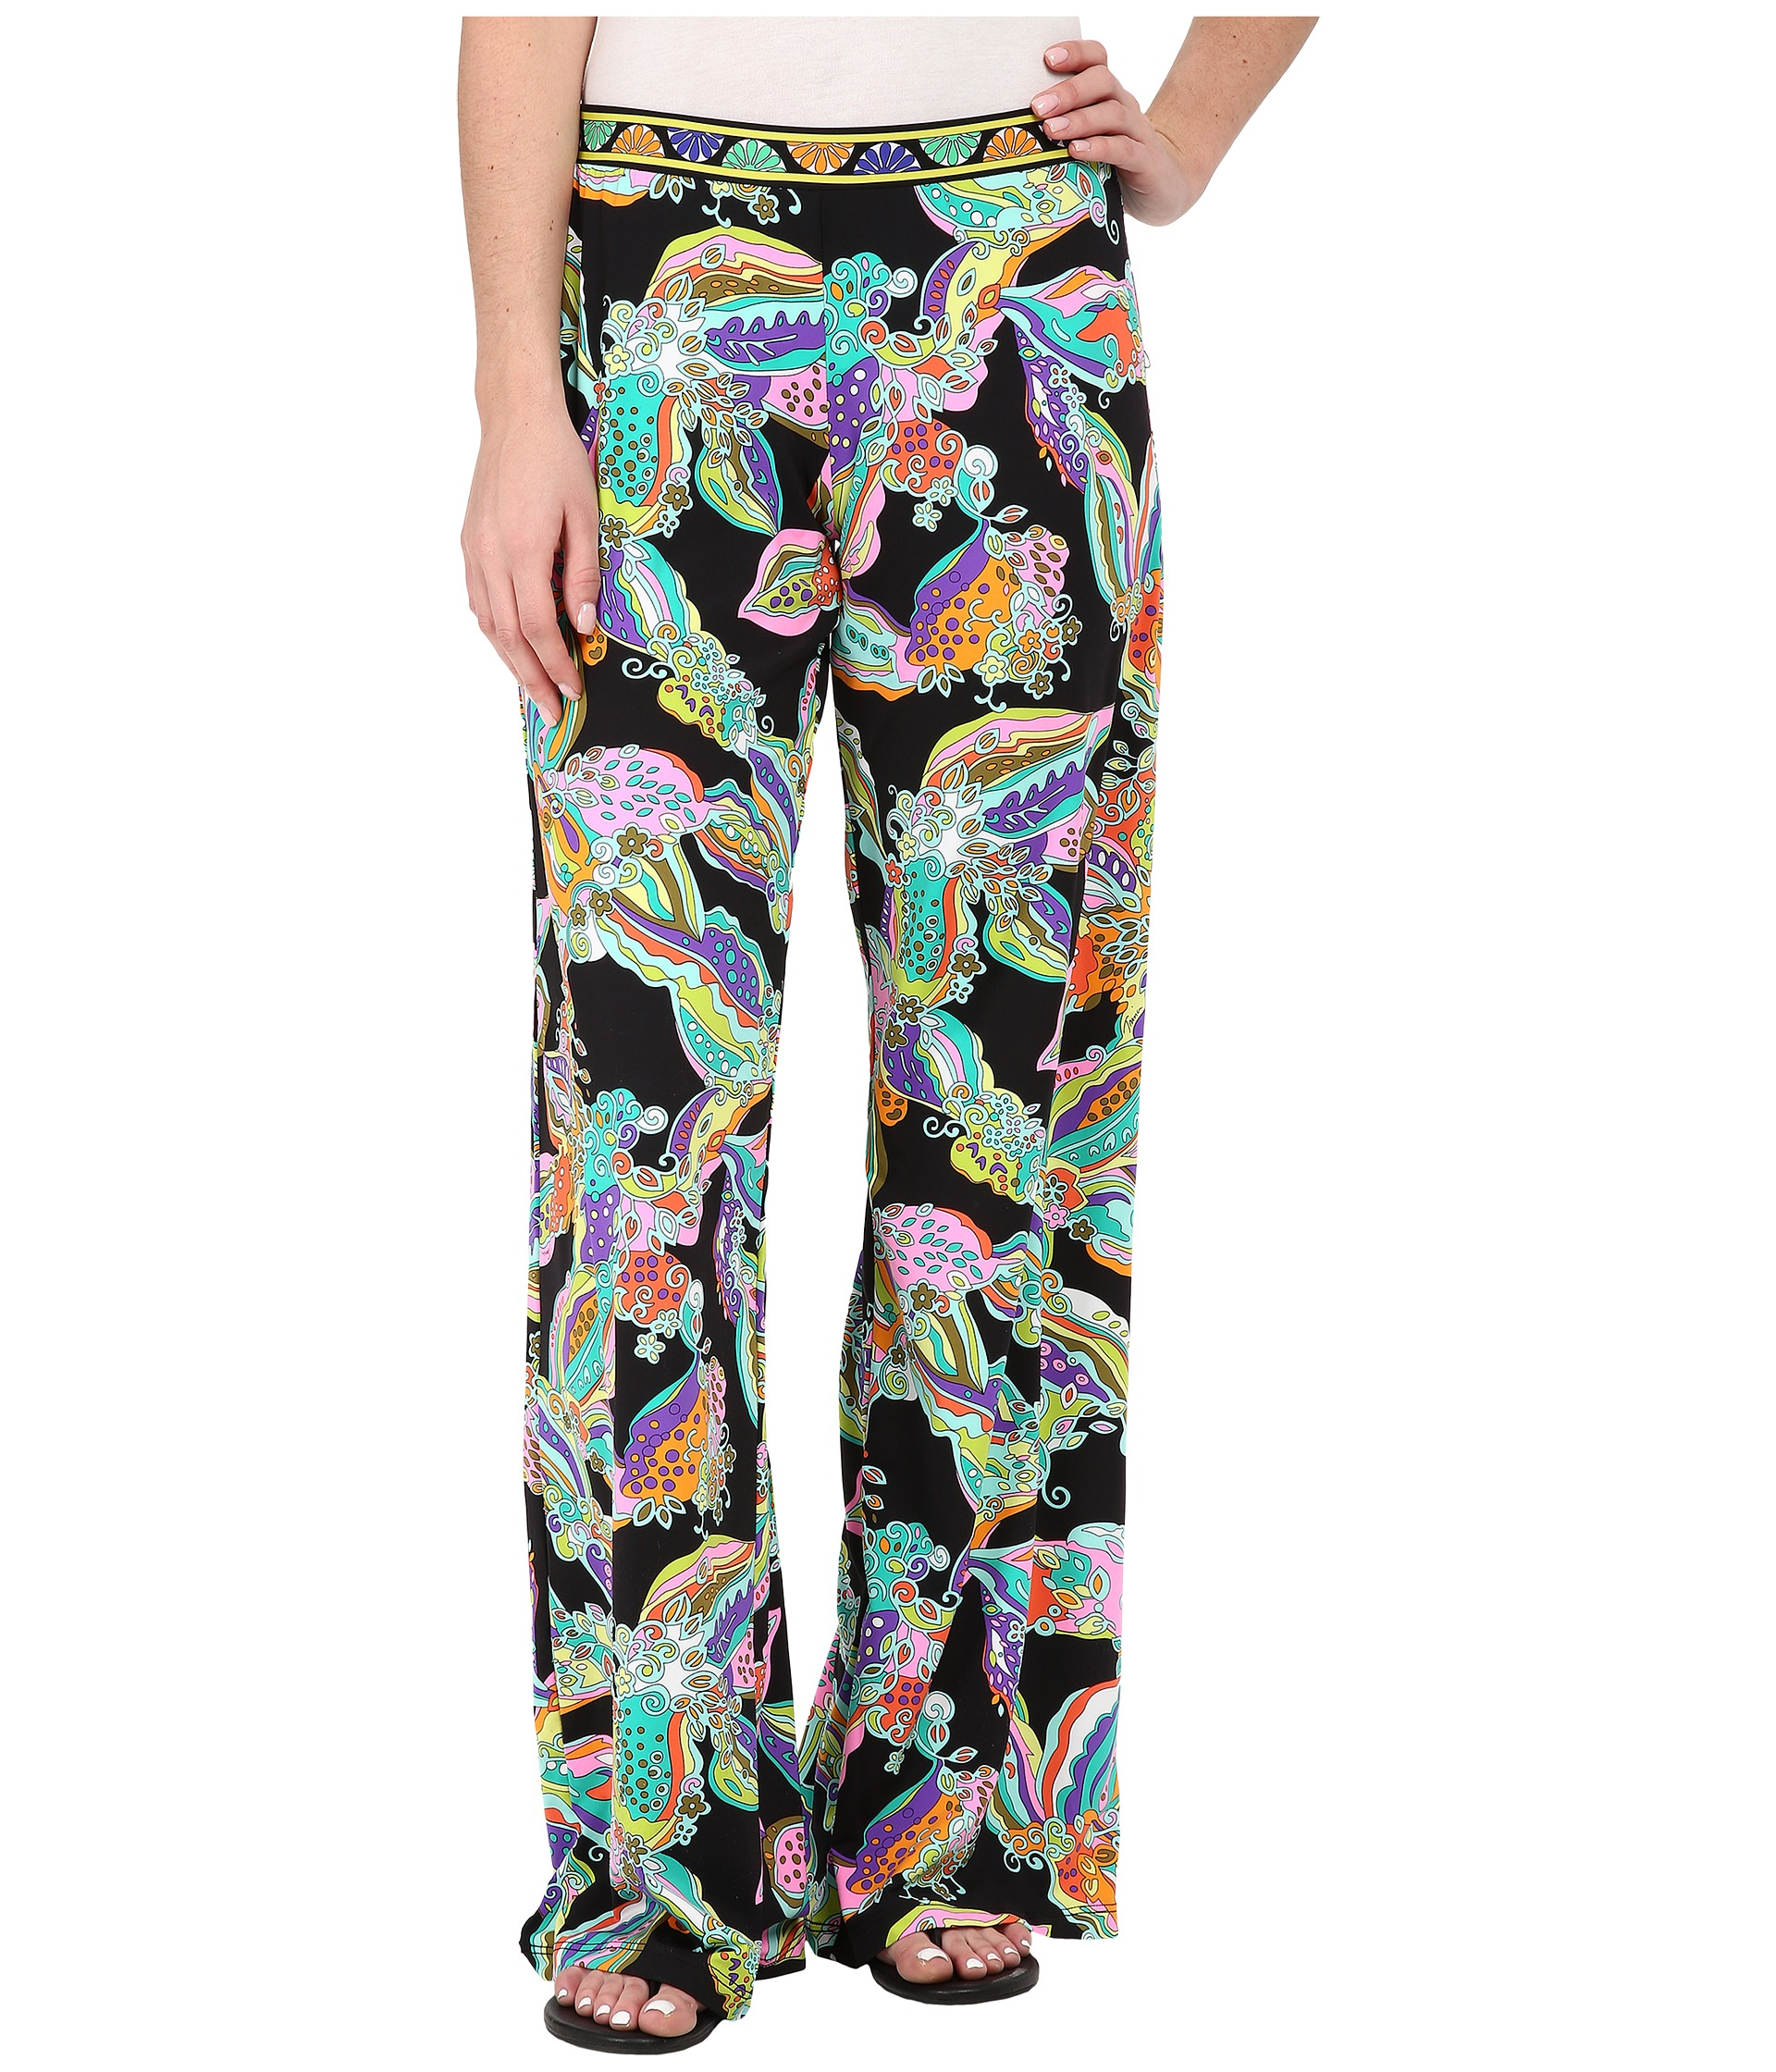 Trina turk Sea Garden Wide Leg Pant in Black | Lyst